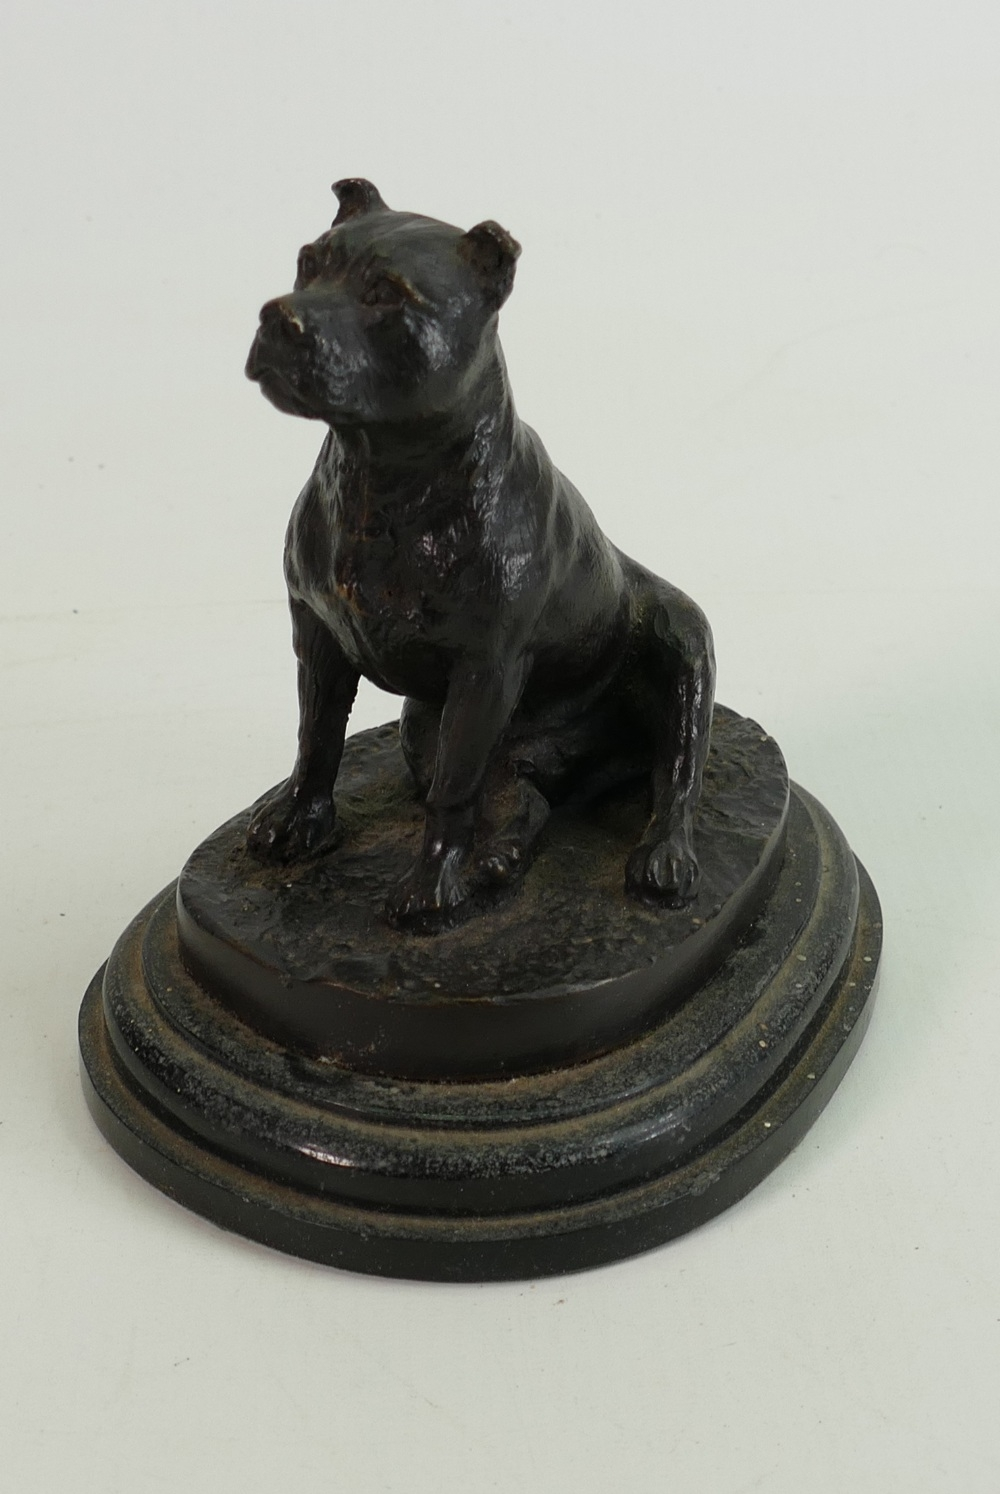 Bronze Staffordshire Bull Terrier: mounted on wooden plinth, height 14cm